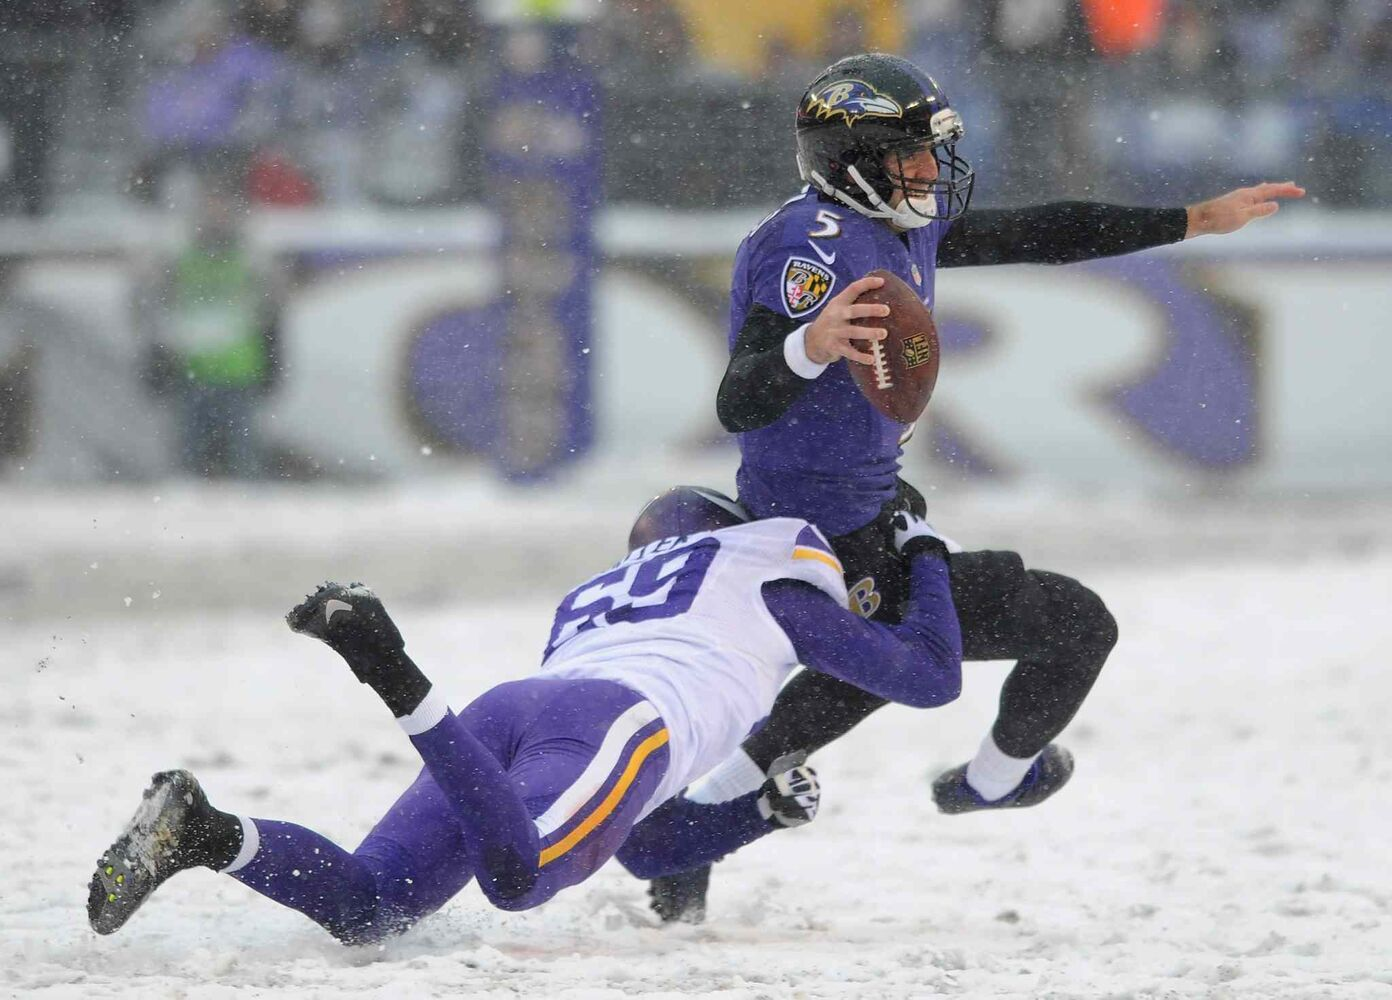 Baltimore Ravens quarterback Joe Flacco (right) is tackled by Minnesota Vikings defensive end Jared Allen as he rushes the ball in the first half. (CP)